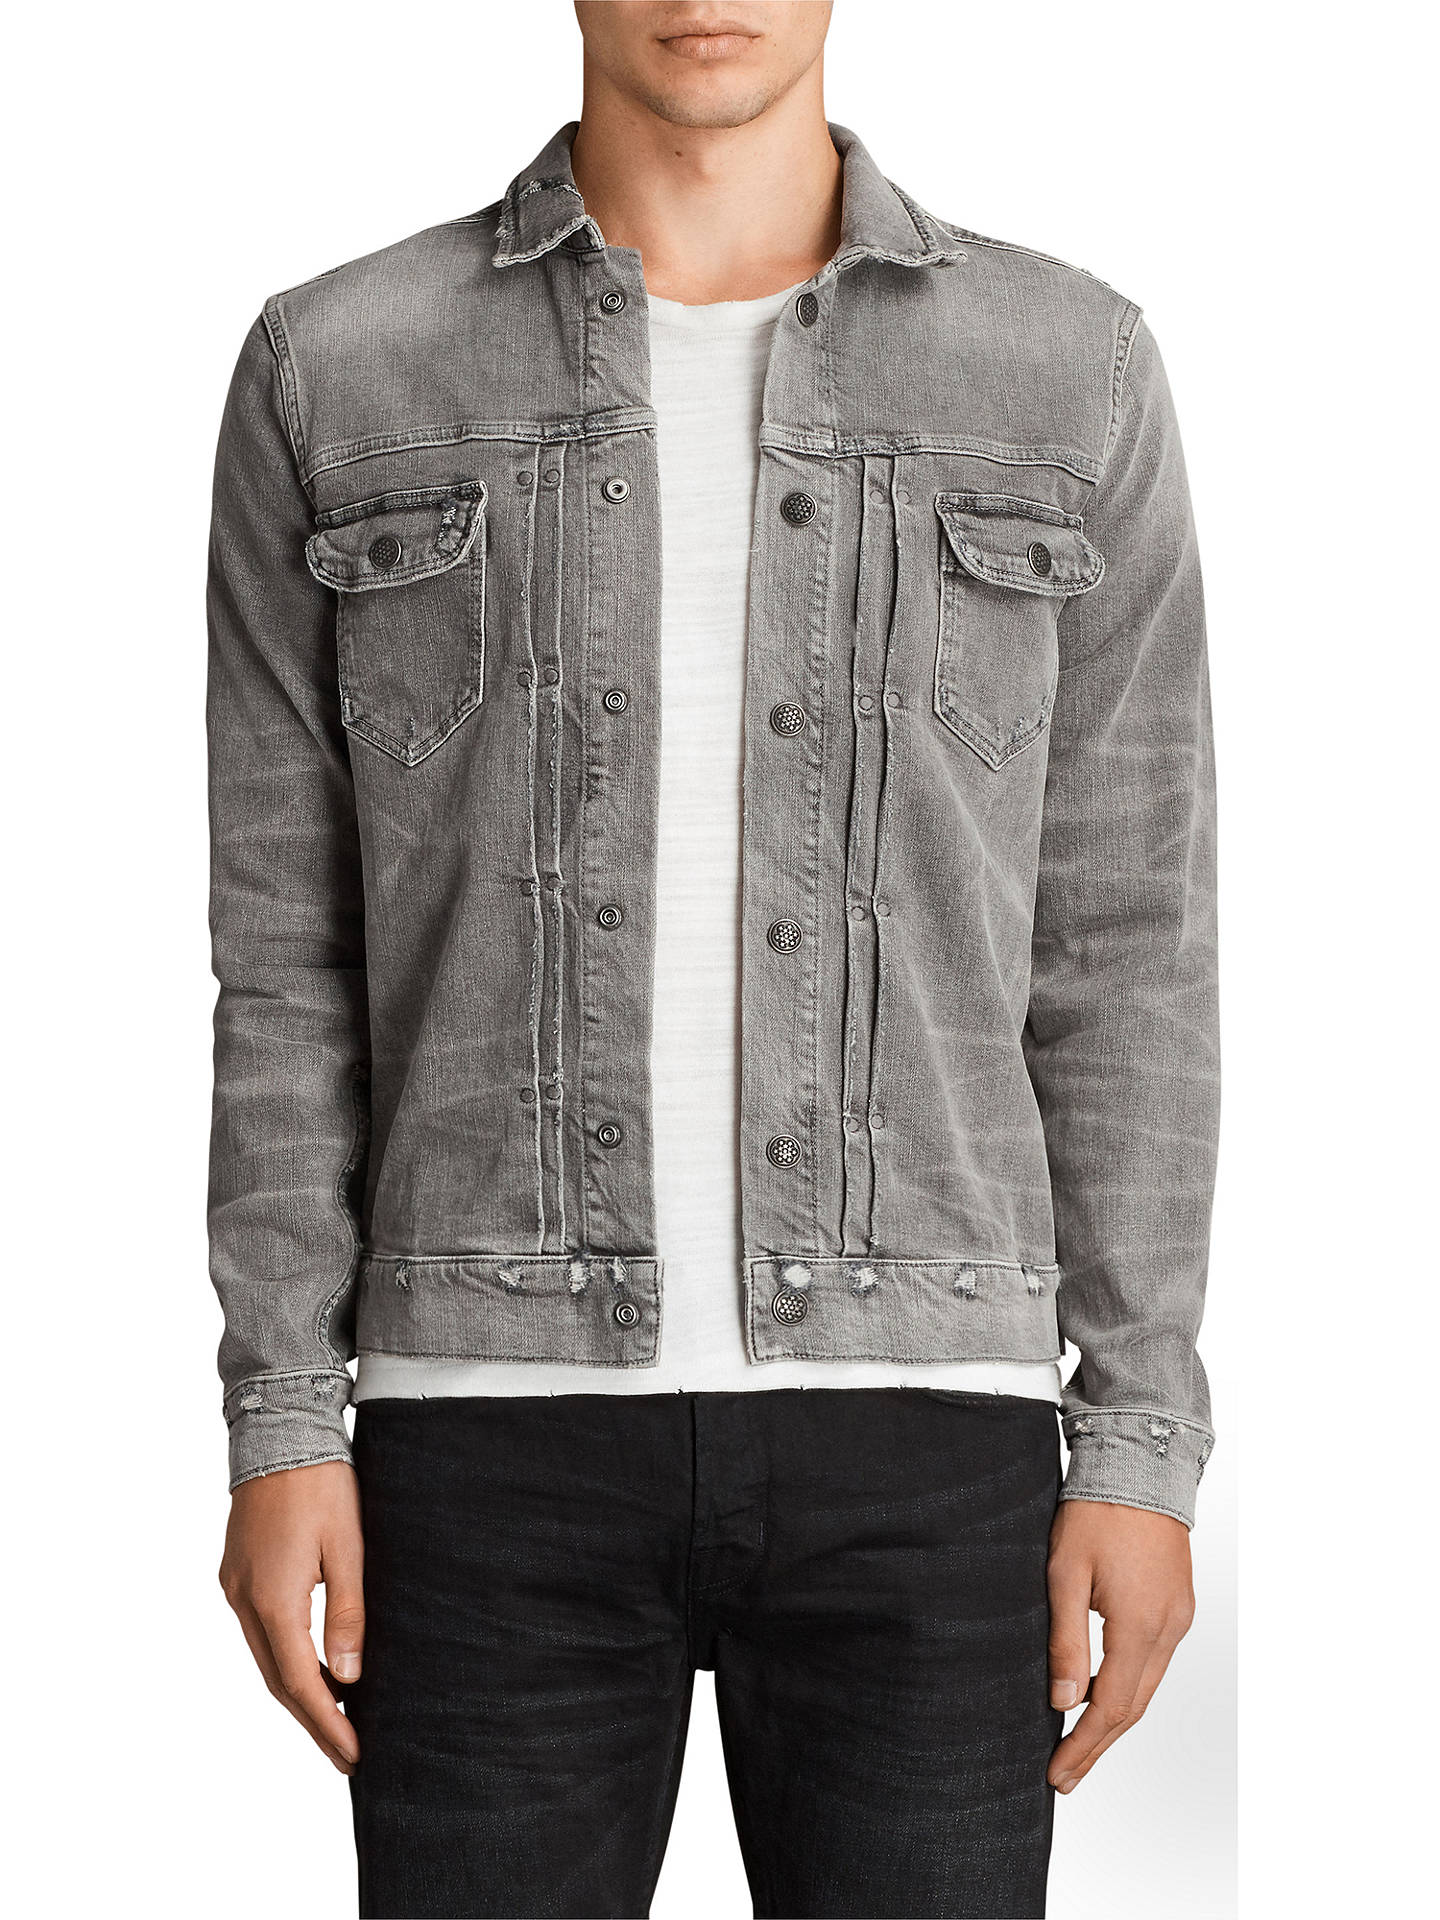 AllSaints Ginan Denim Jacket, Grey at John Lewis & Partners